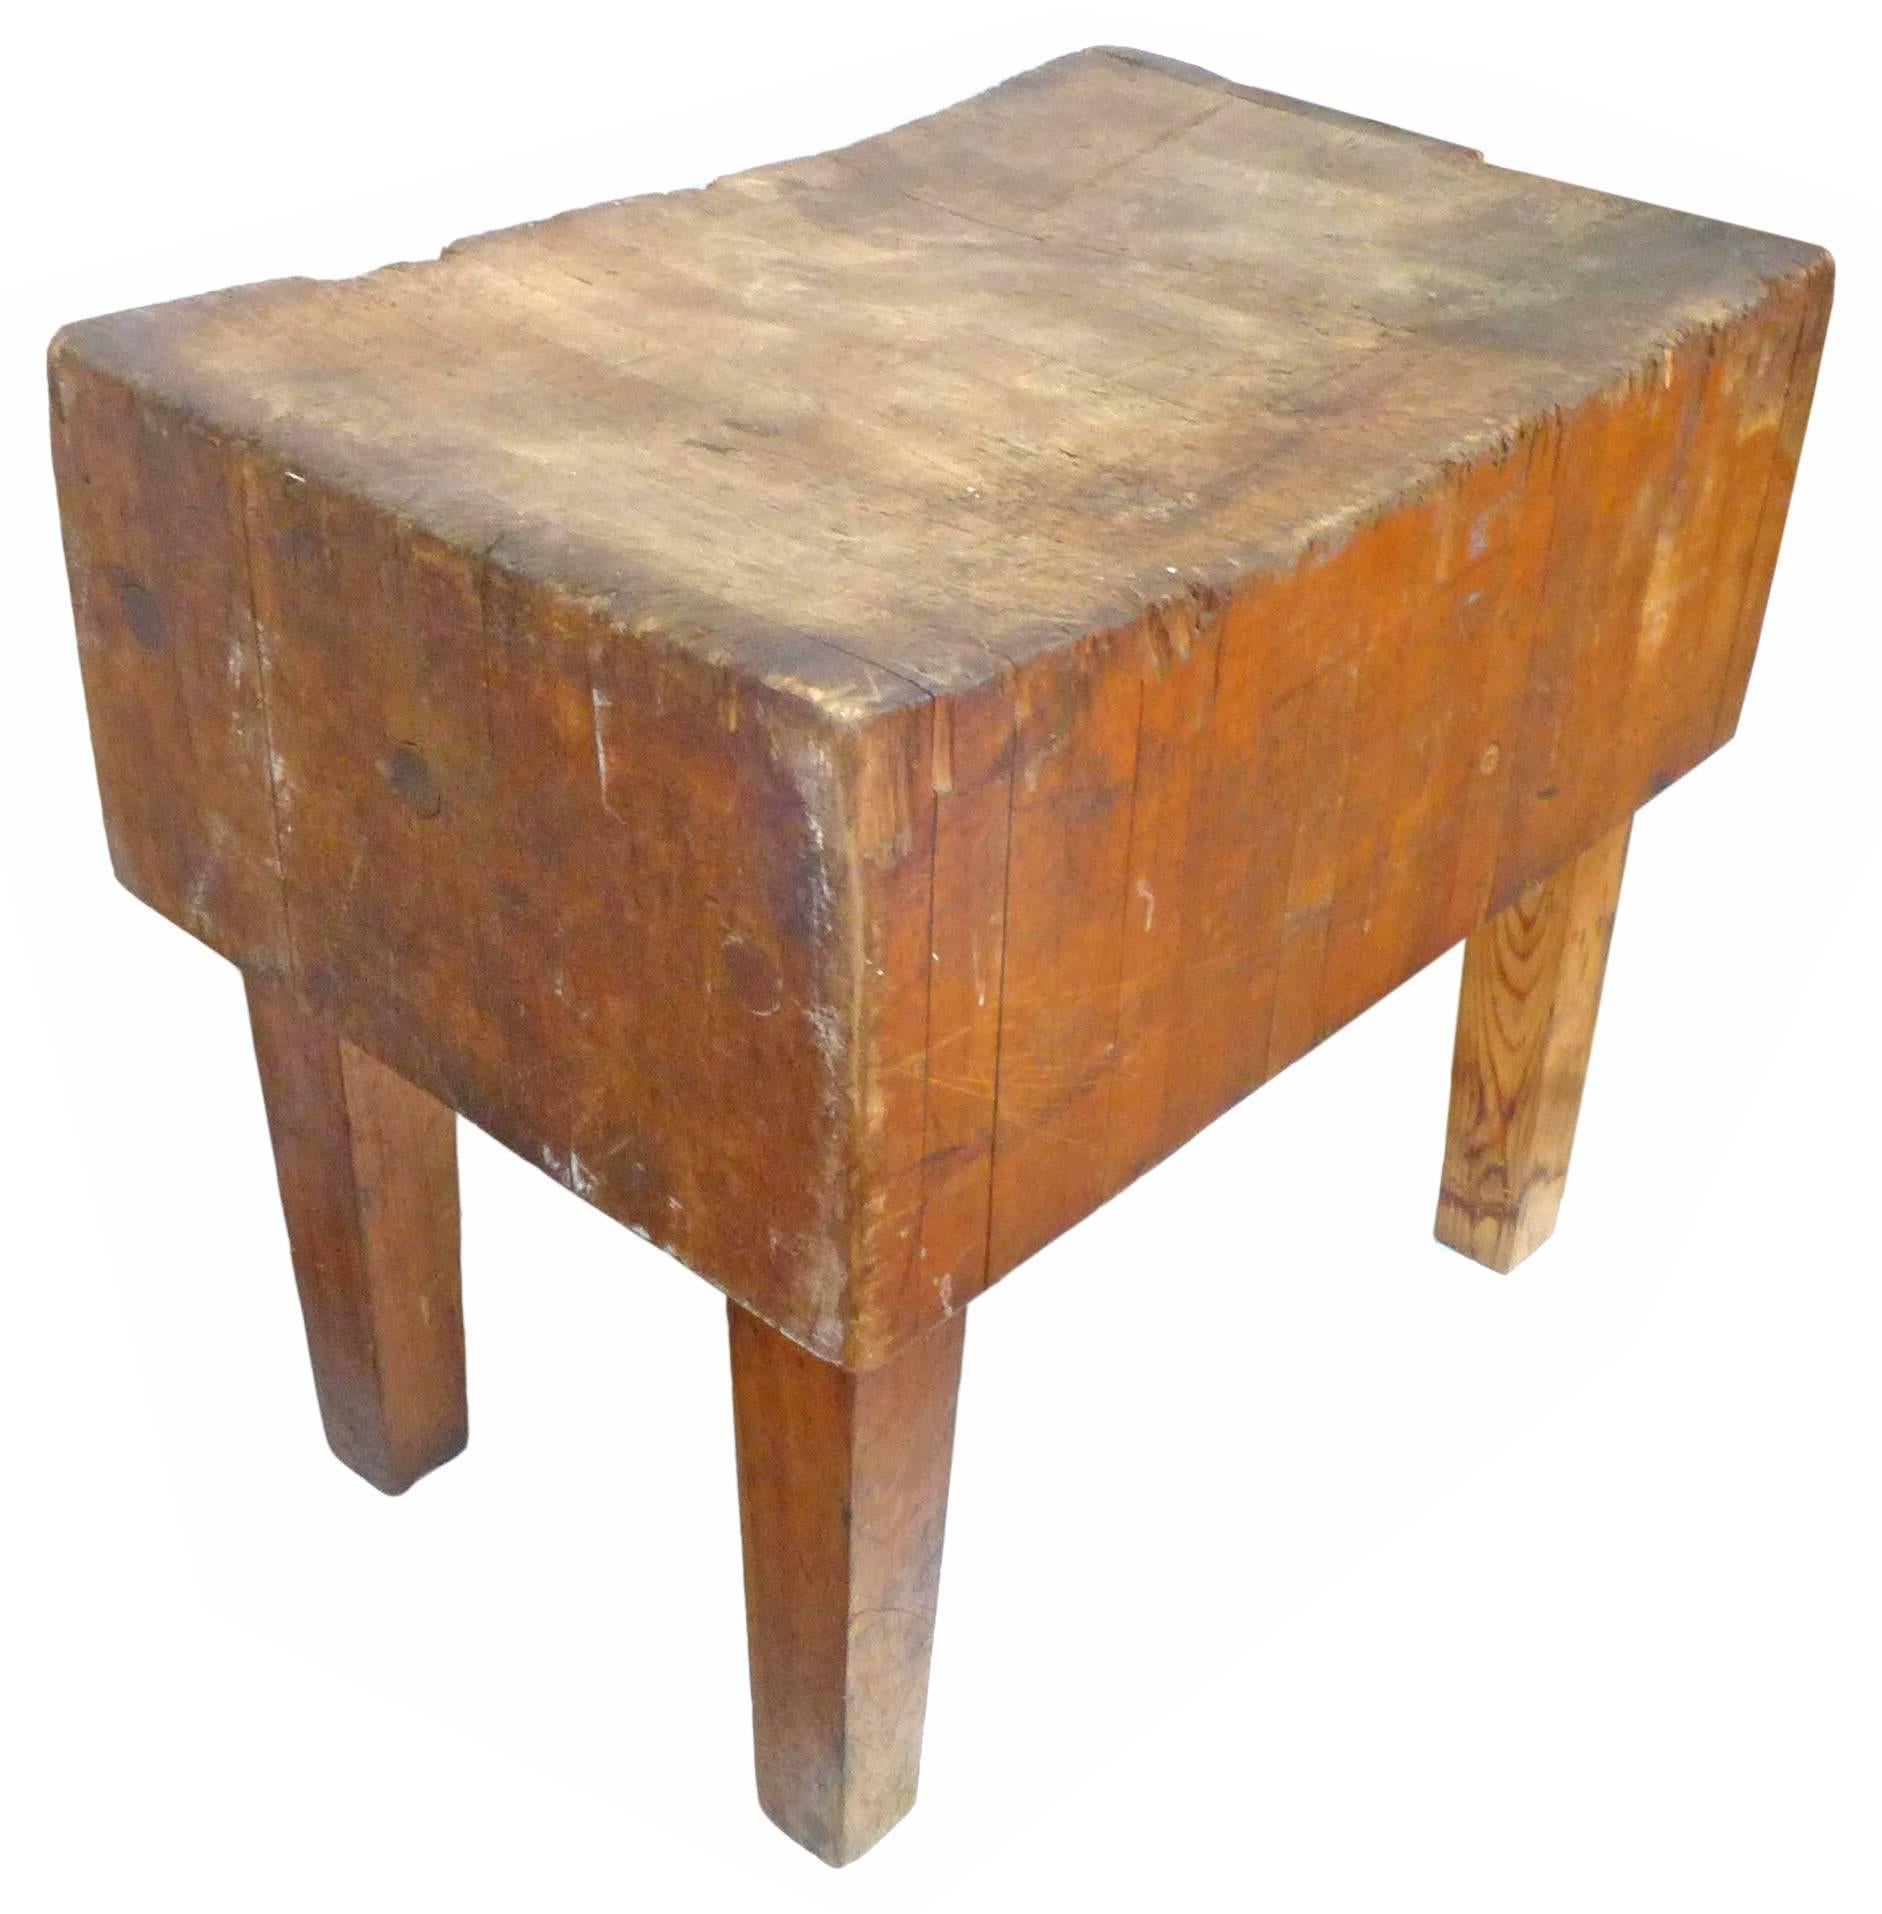 An Incredible, Vintage, Wood Butcher Block Table. A Fantastic Piece,  Beautifully